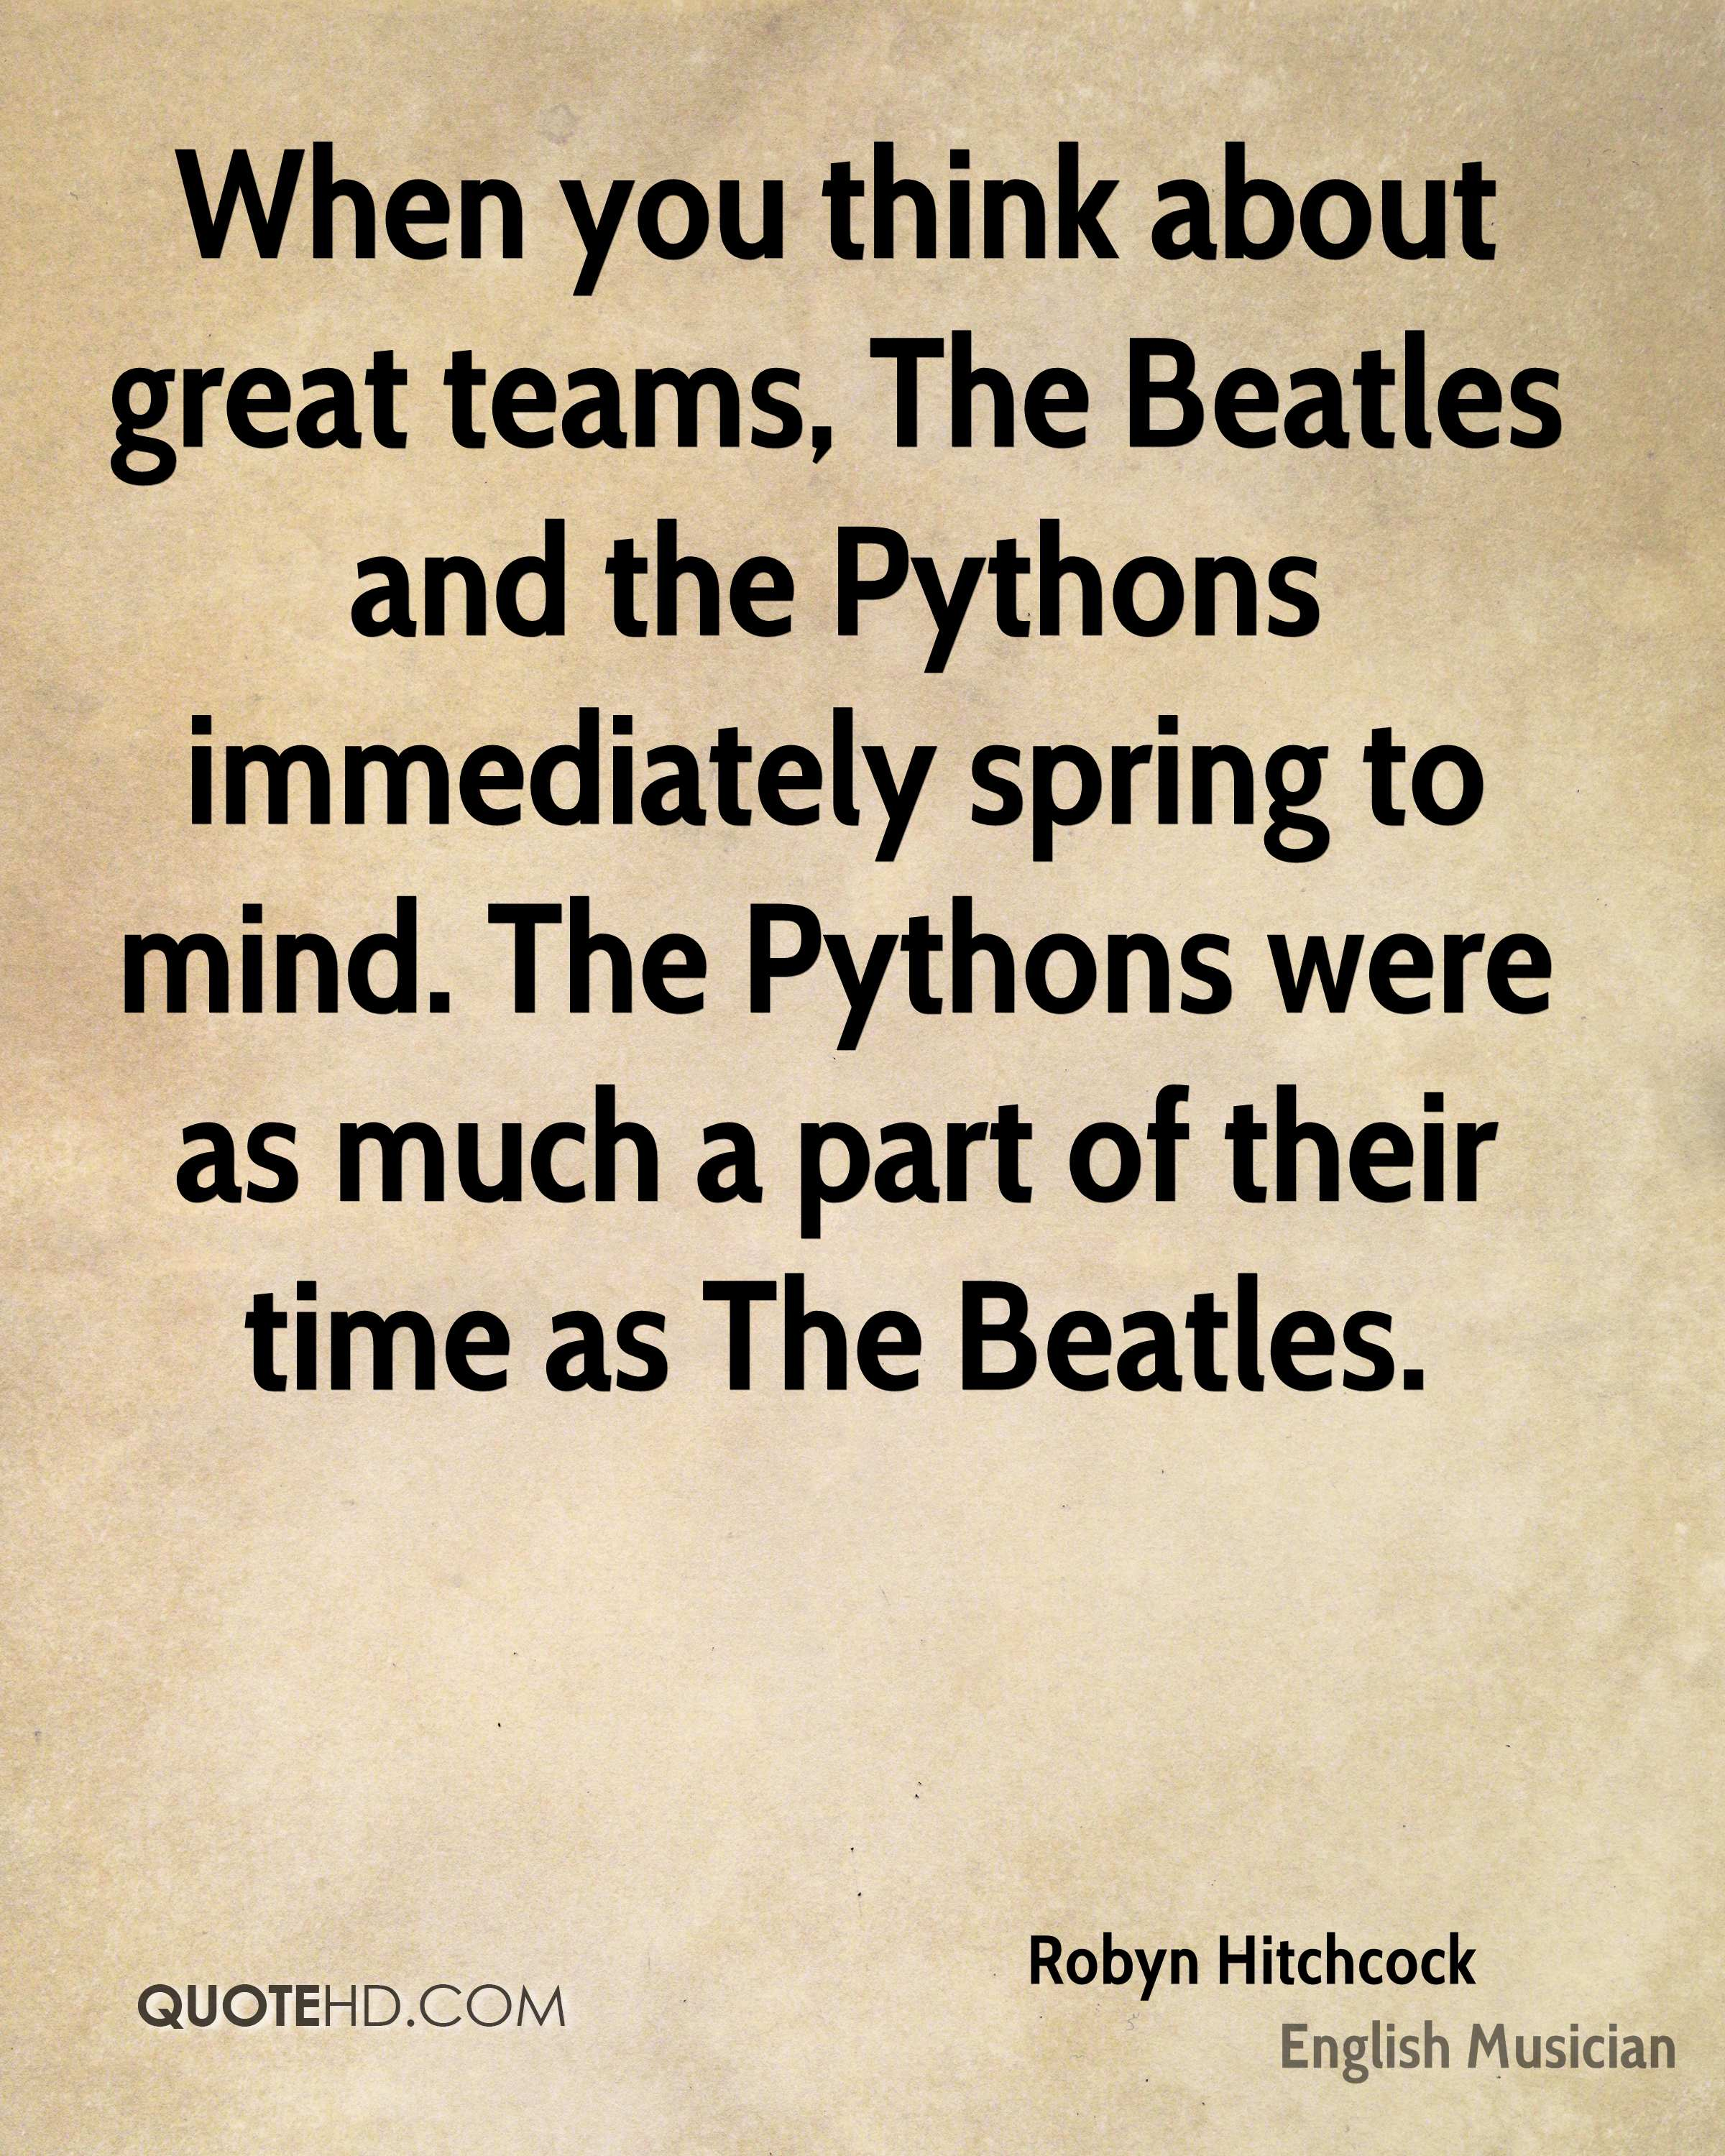 When you think about great teams, The Beatles and the Pythons immediately spring to mind. The Pythons were as much a part of their time as The Beatles.